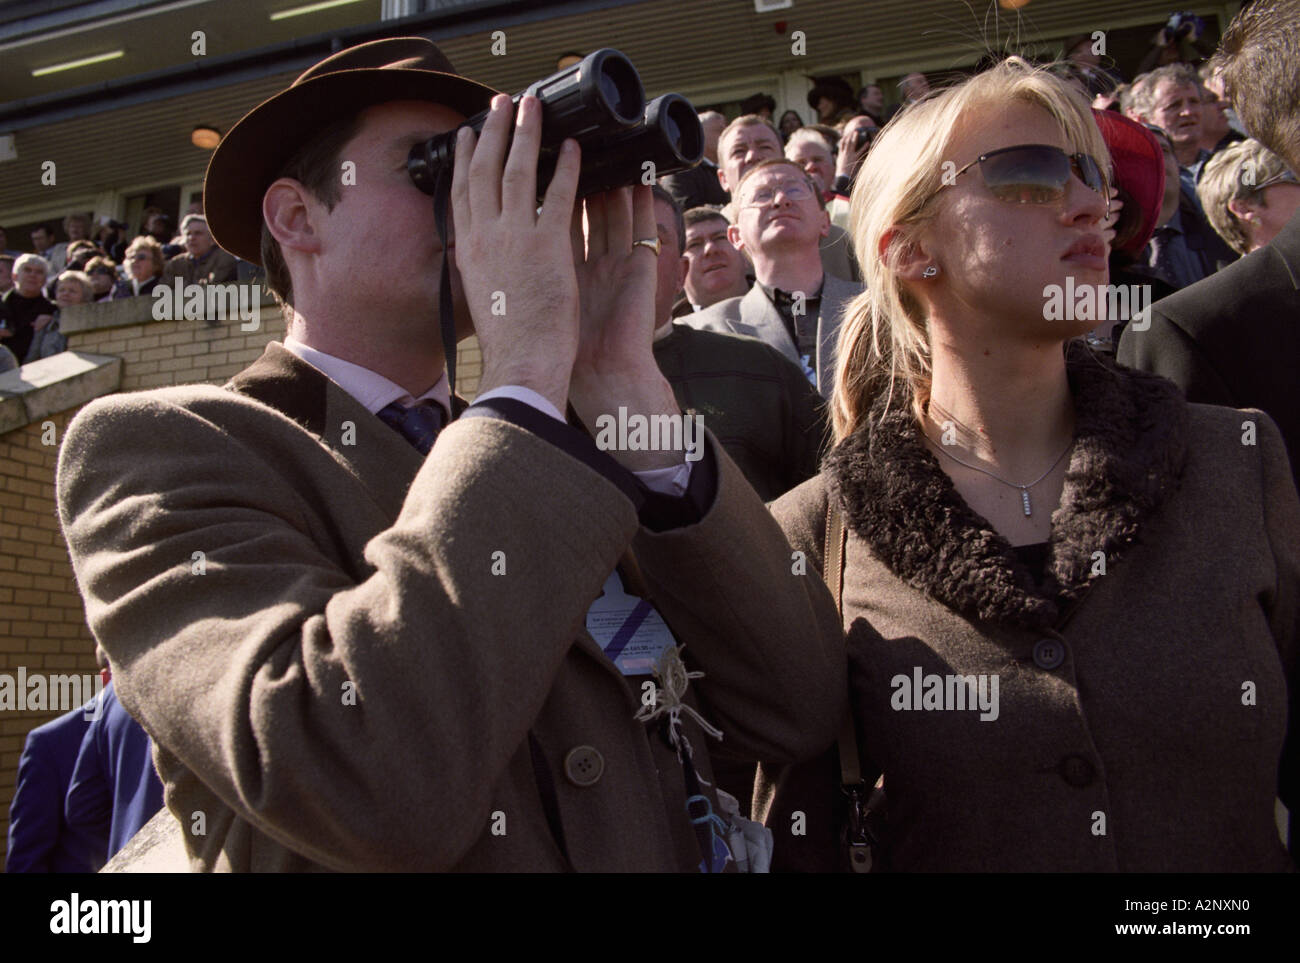 United Kingdom, England, Liverpool, Aintree Racecourse Horse racing spectators at the Grand National Stock Photo